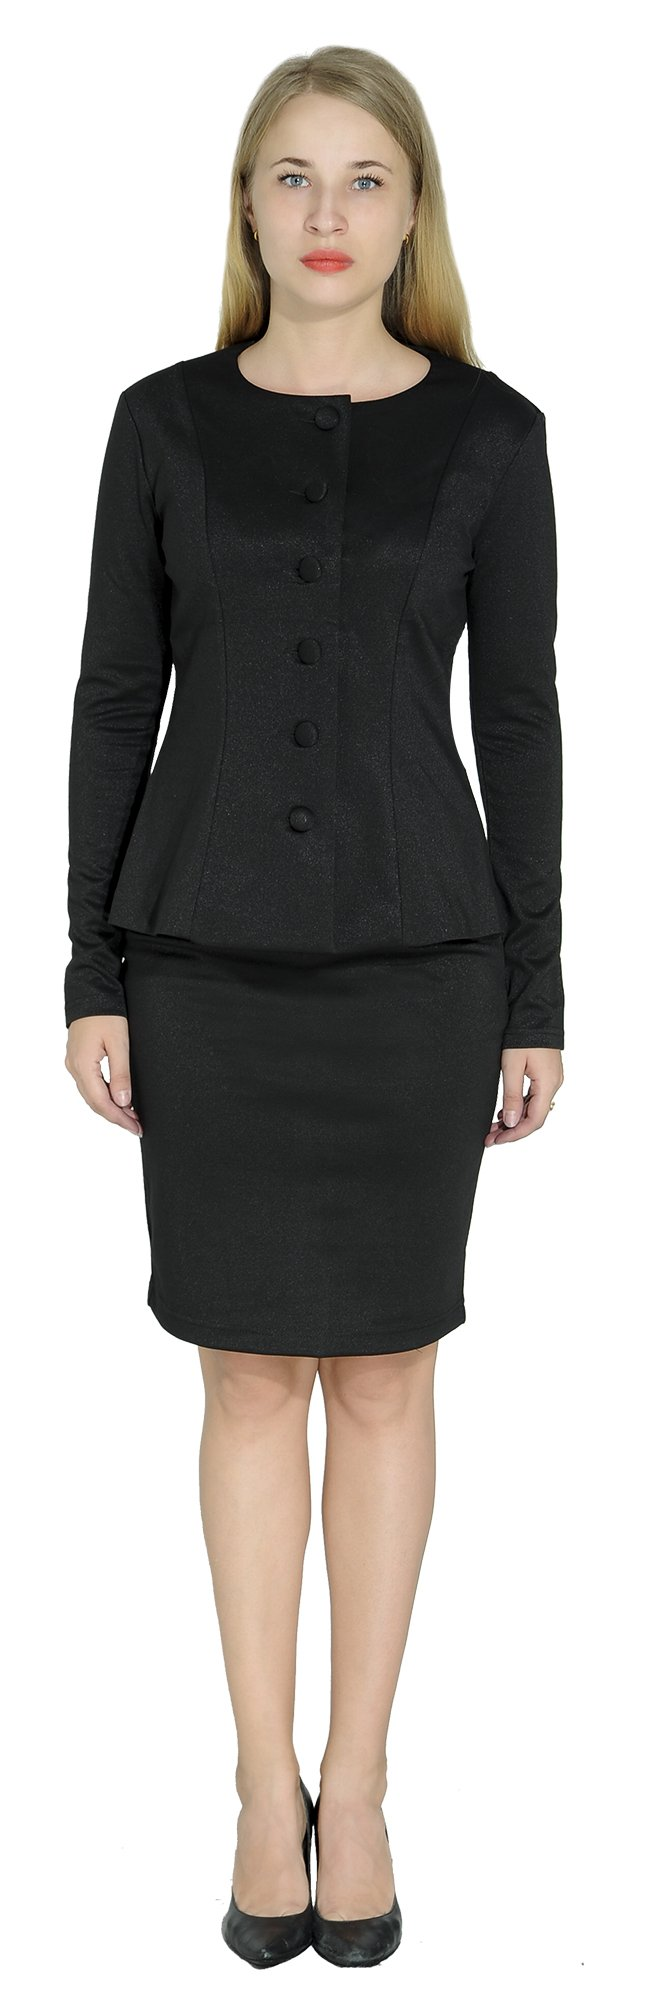 Marycrafts Women's Formal Office Business Work Skirt Suit Set 12 Onyx Black